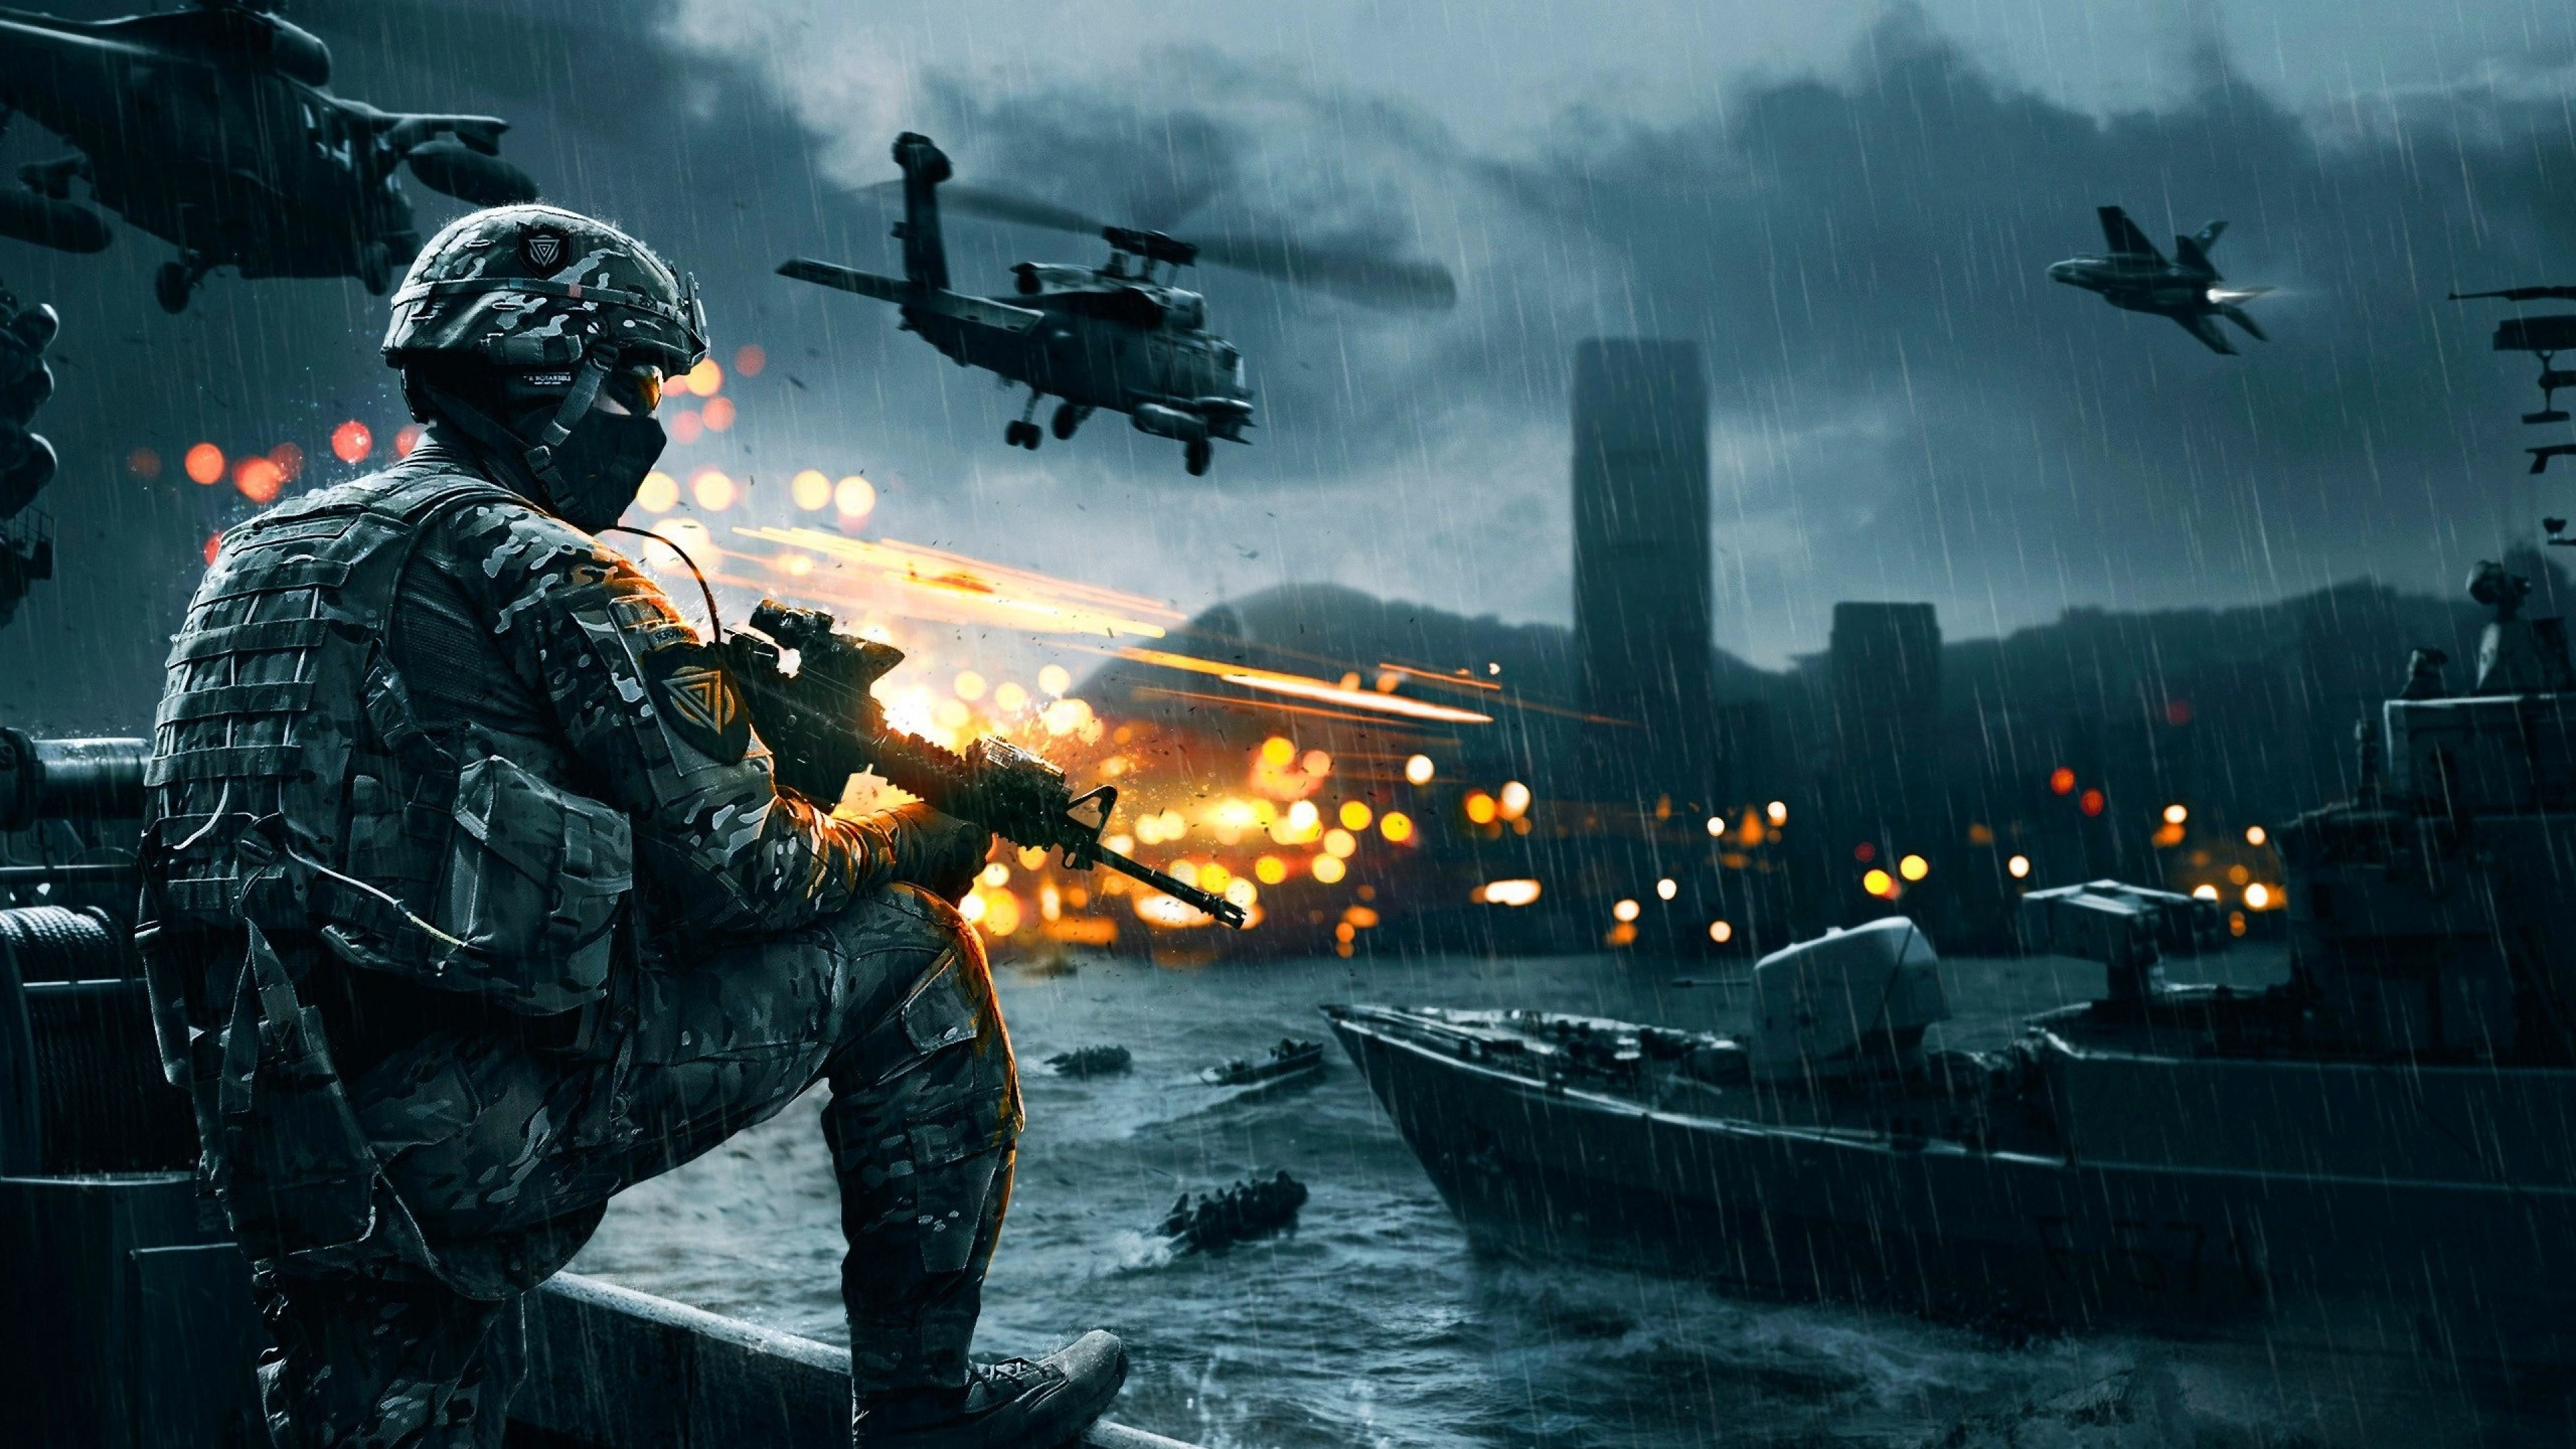 Download Wallpaper 1280x1280 Battlefield 4 Game Ea: Battlefield 4, HD Games, 4k Wallpapers, Images